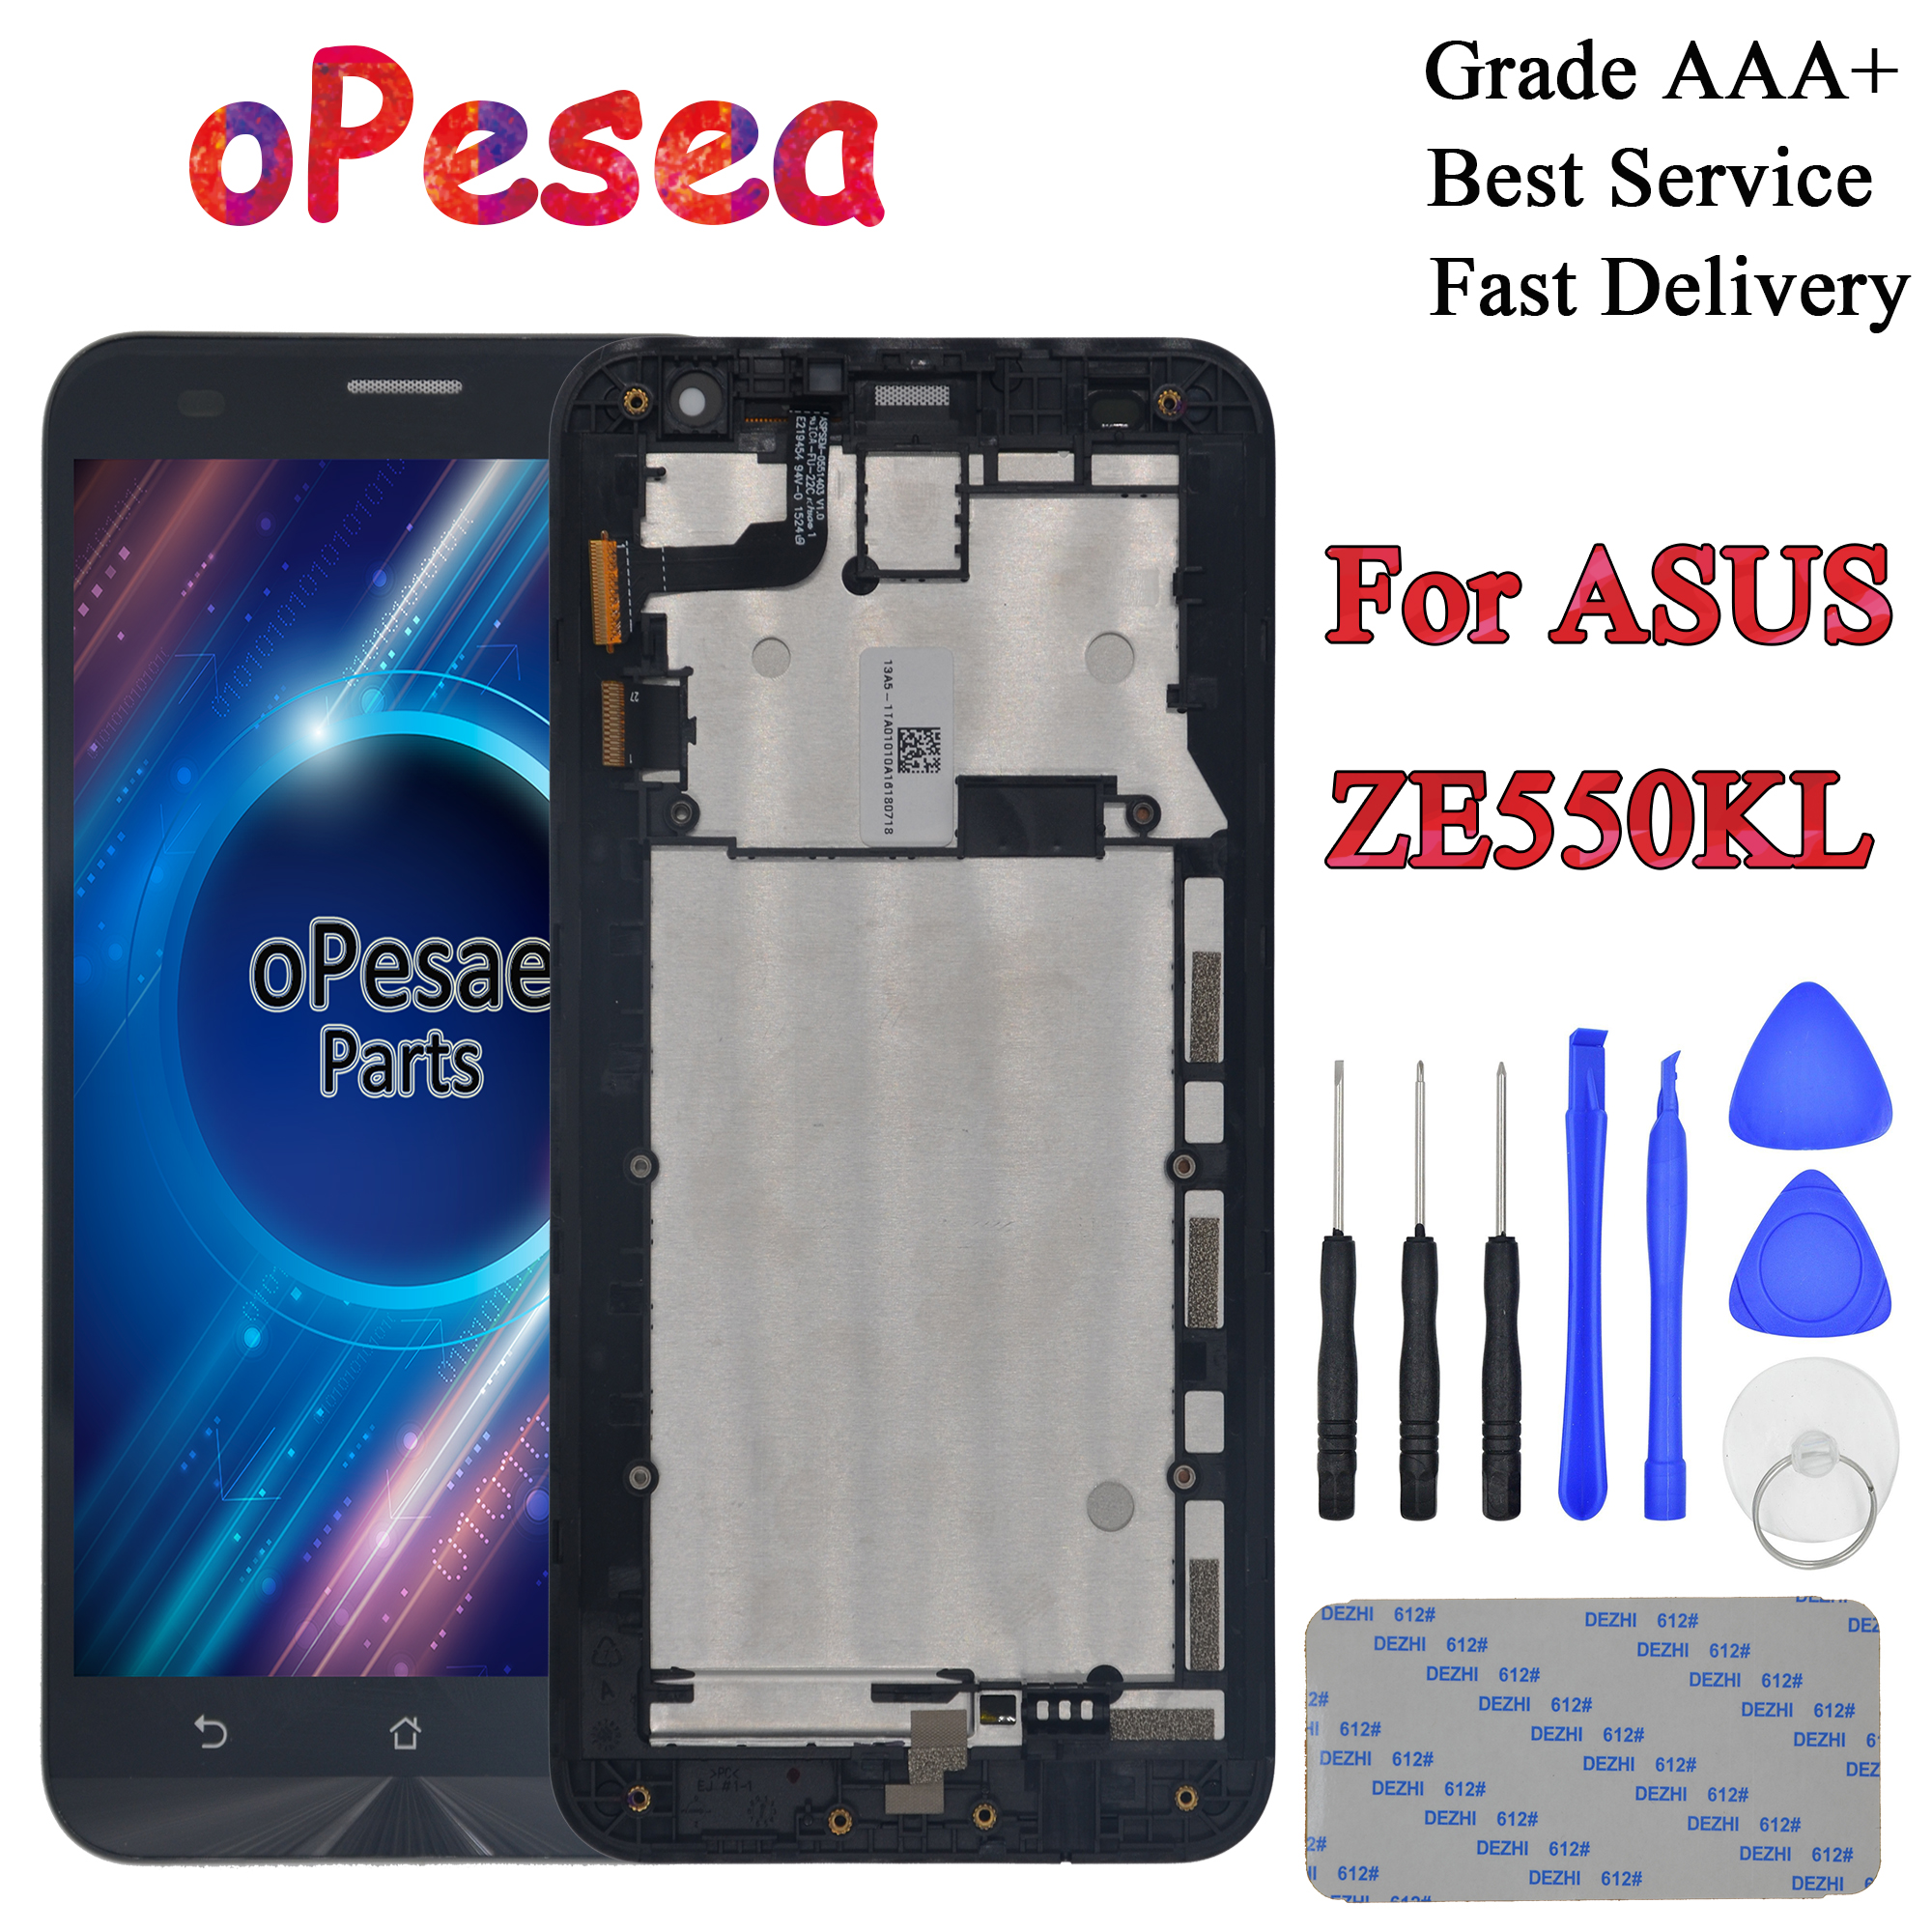 oPesea 5.5'' For Asus Zenfone 2 Laser <font><b>ZE550KL</b></font> <font><b>LCD</b></font> Display Panel Touch Screen Digitizer Glass Sensor Assembly With Frame image